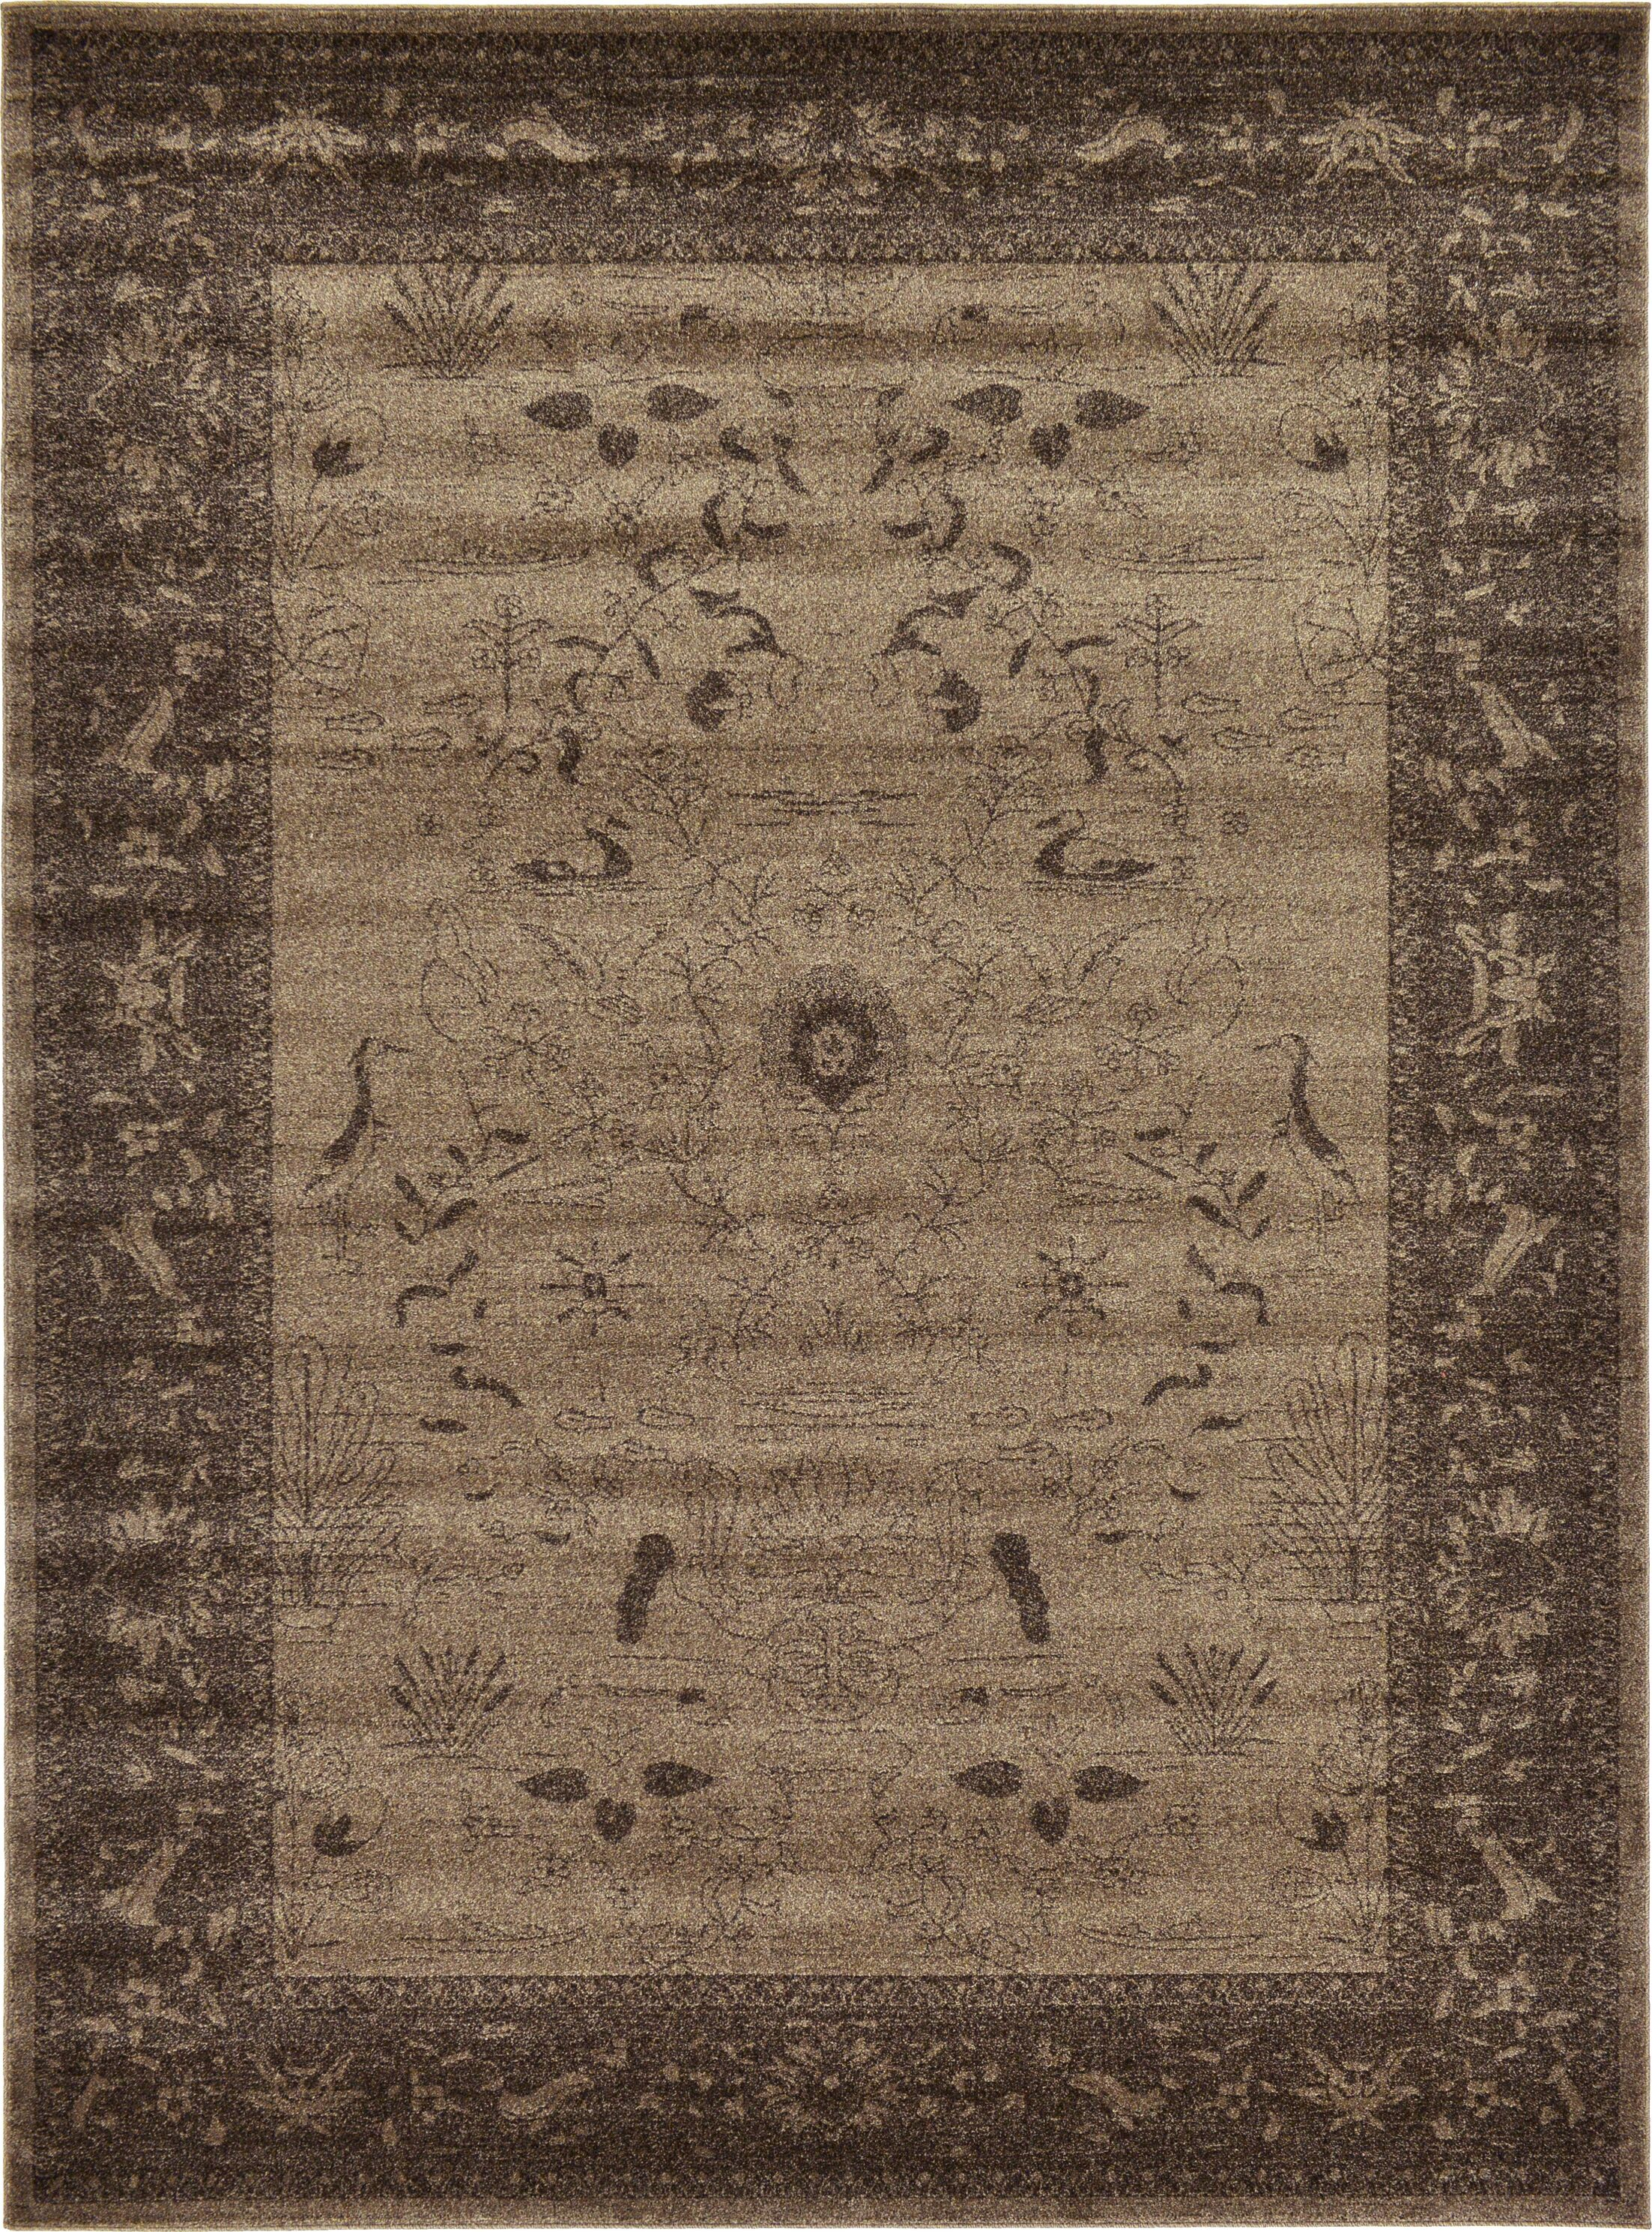 Shailene Brown Area Rug Rug Size: Rectangle 8' x 11'